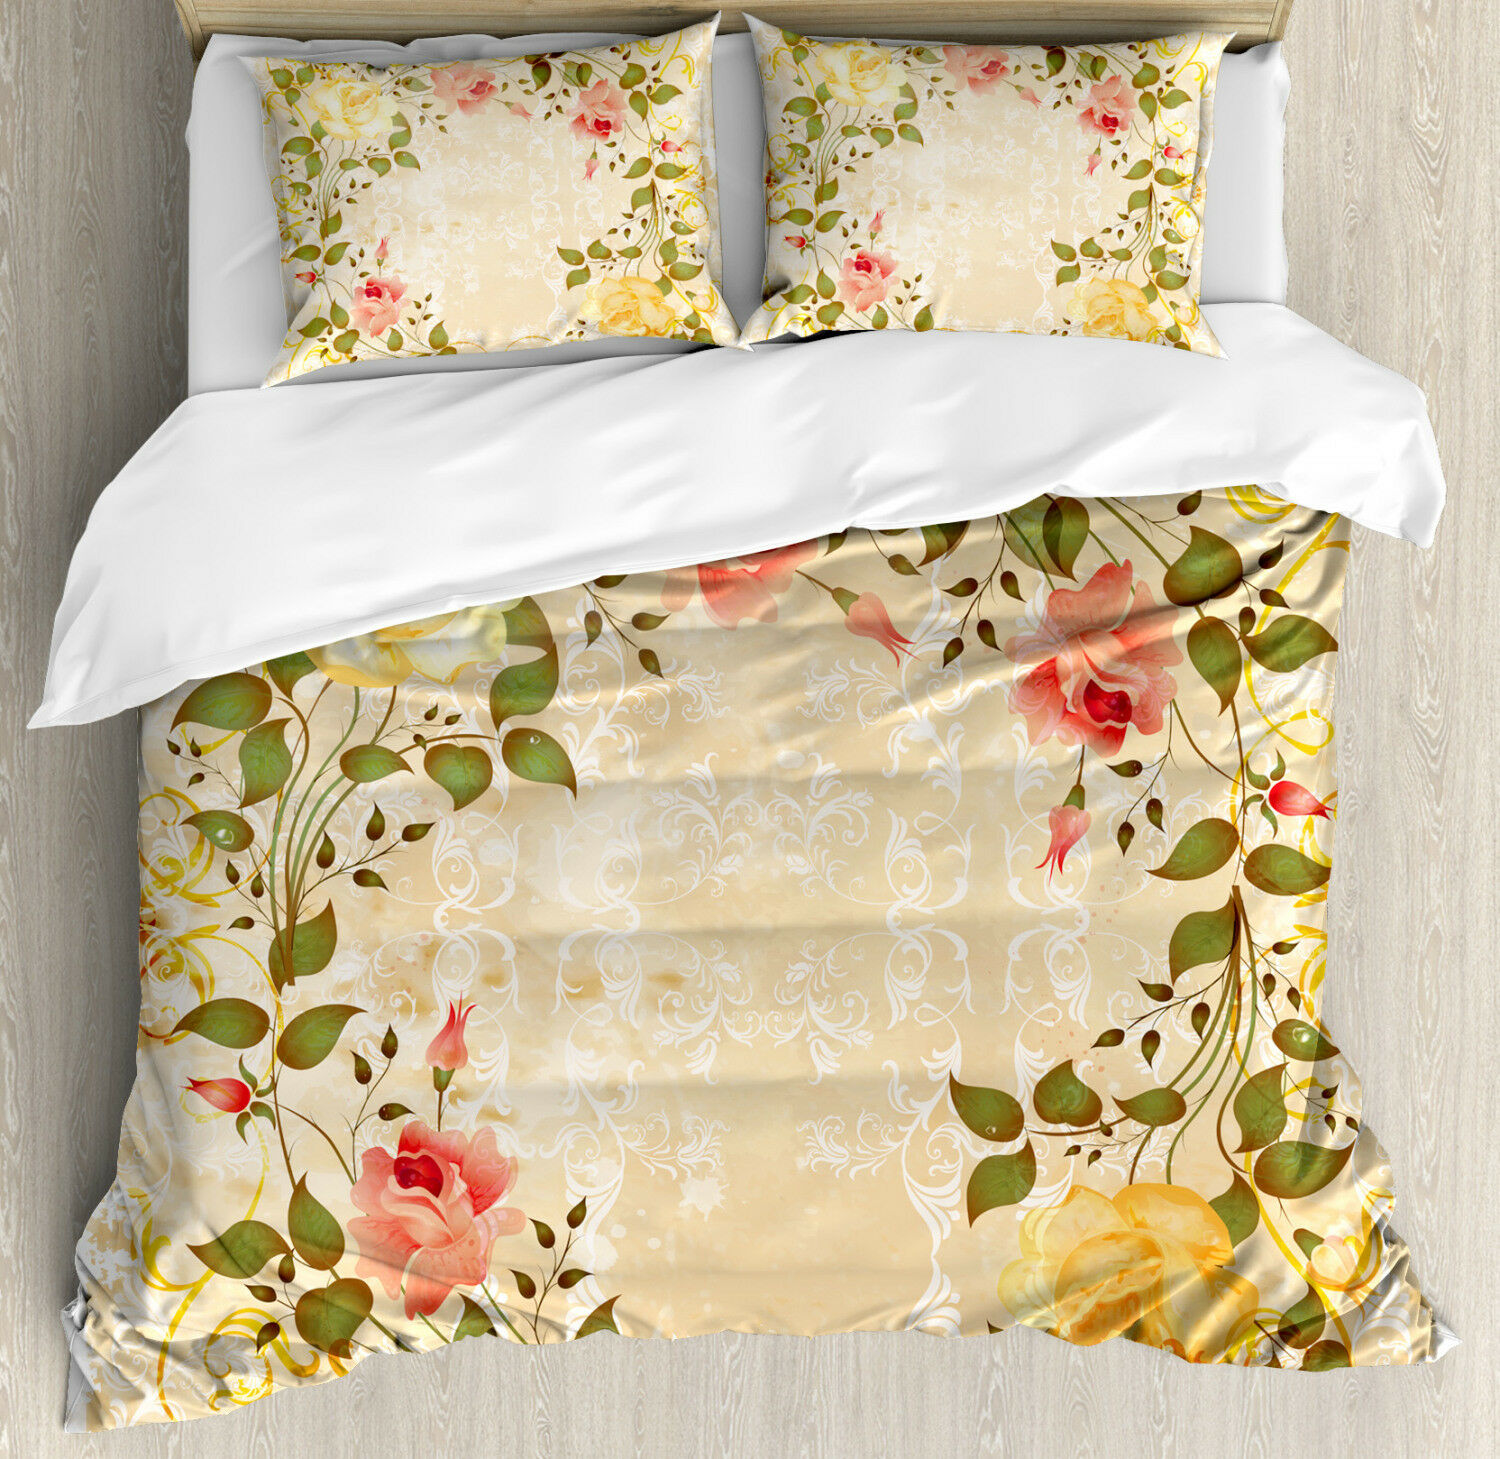 Vintage Duvet Cover Set with Pillow Shams Leaves pinks Floral Print